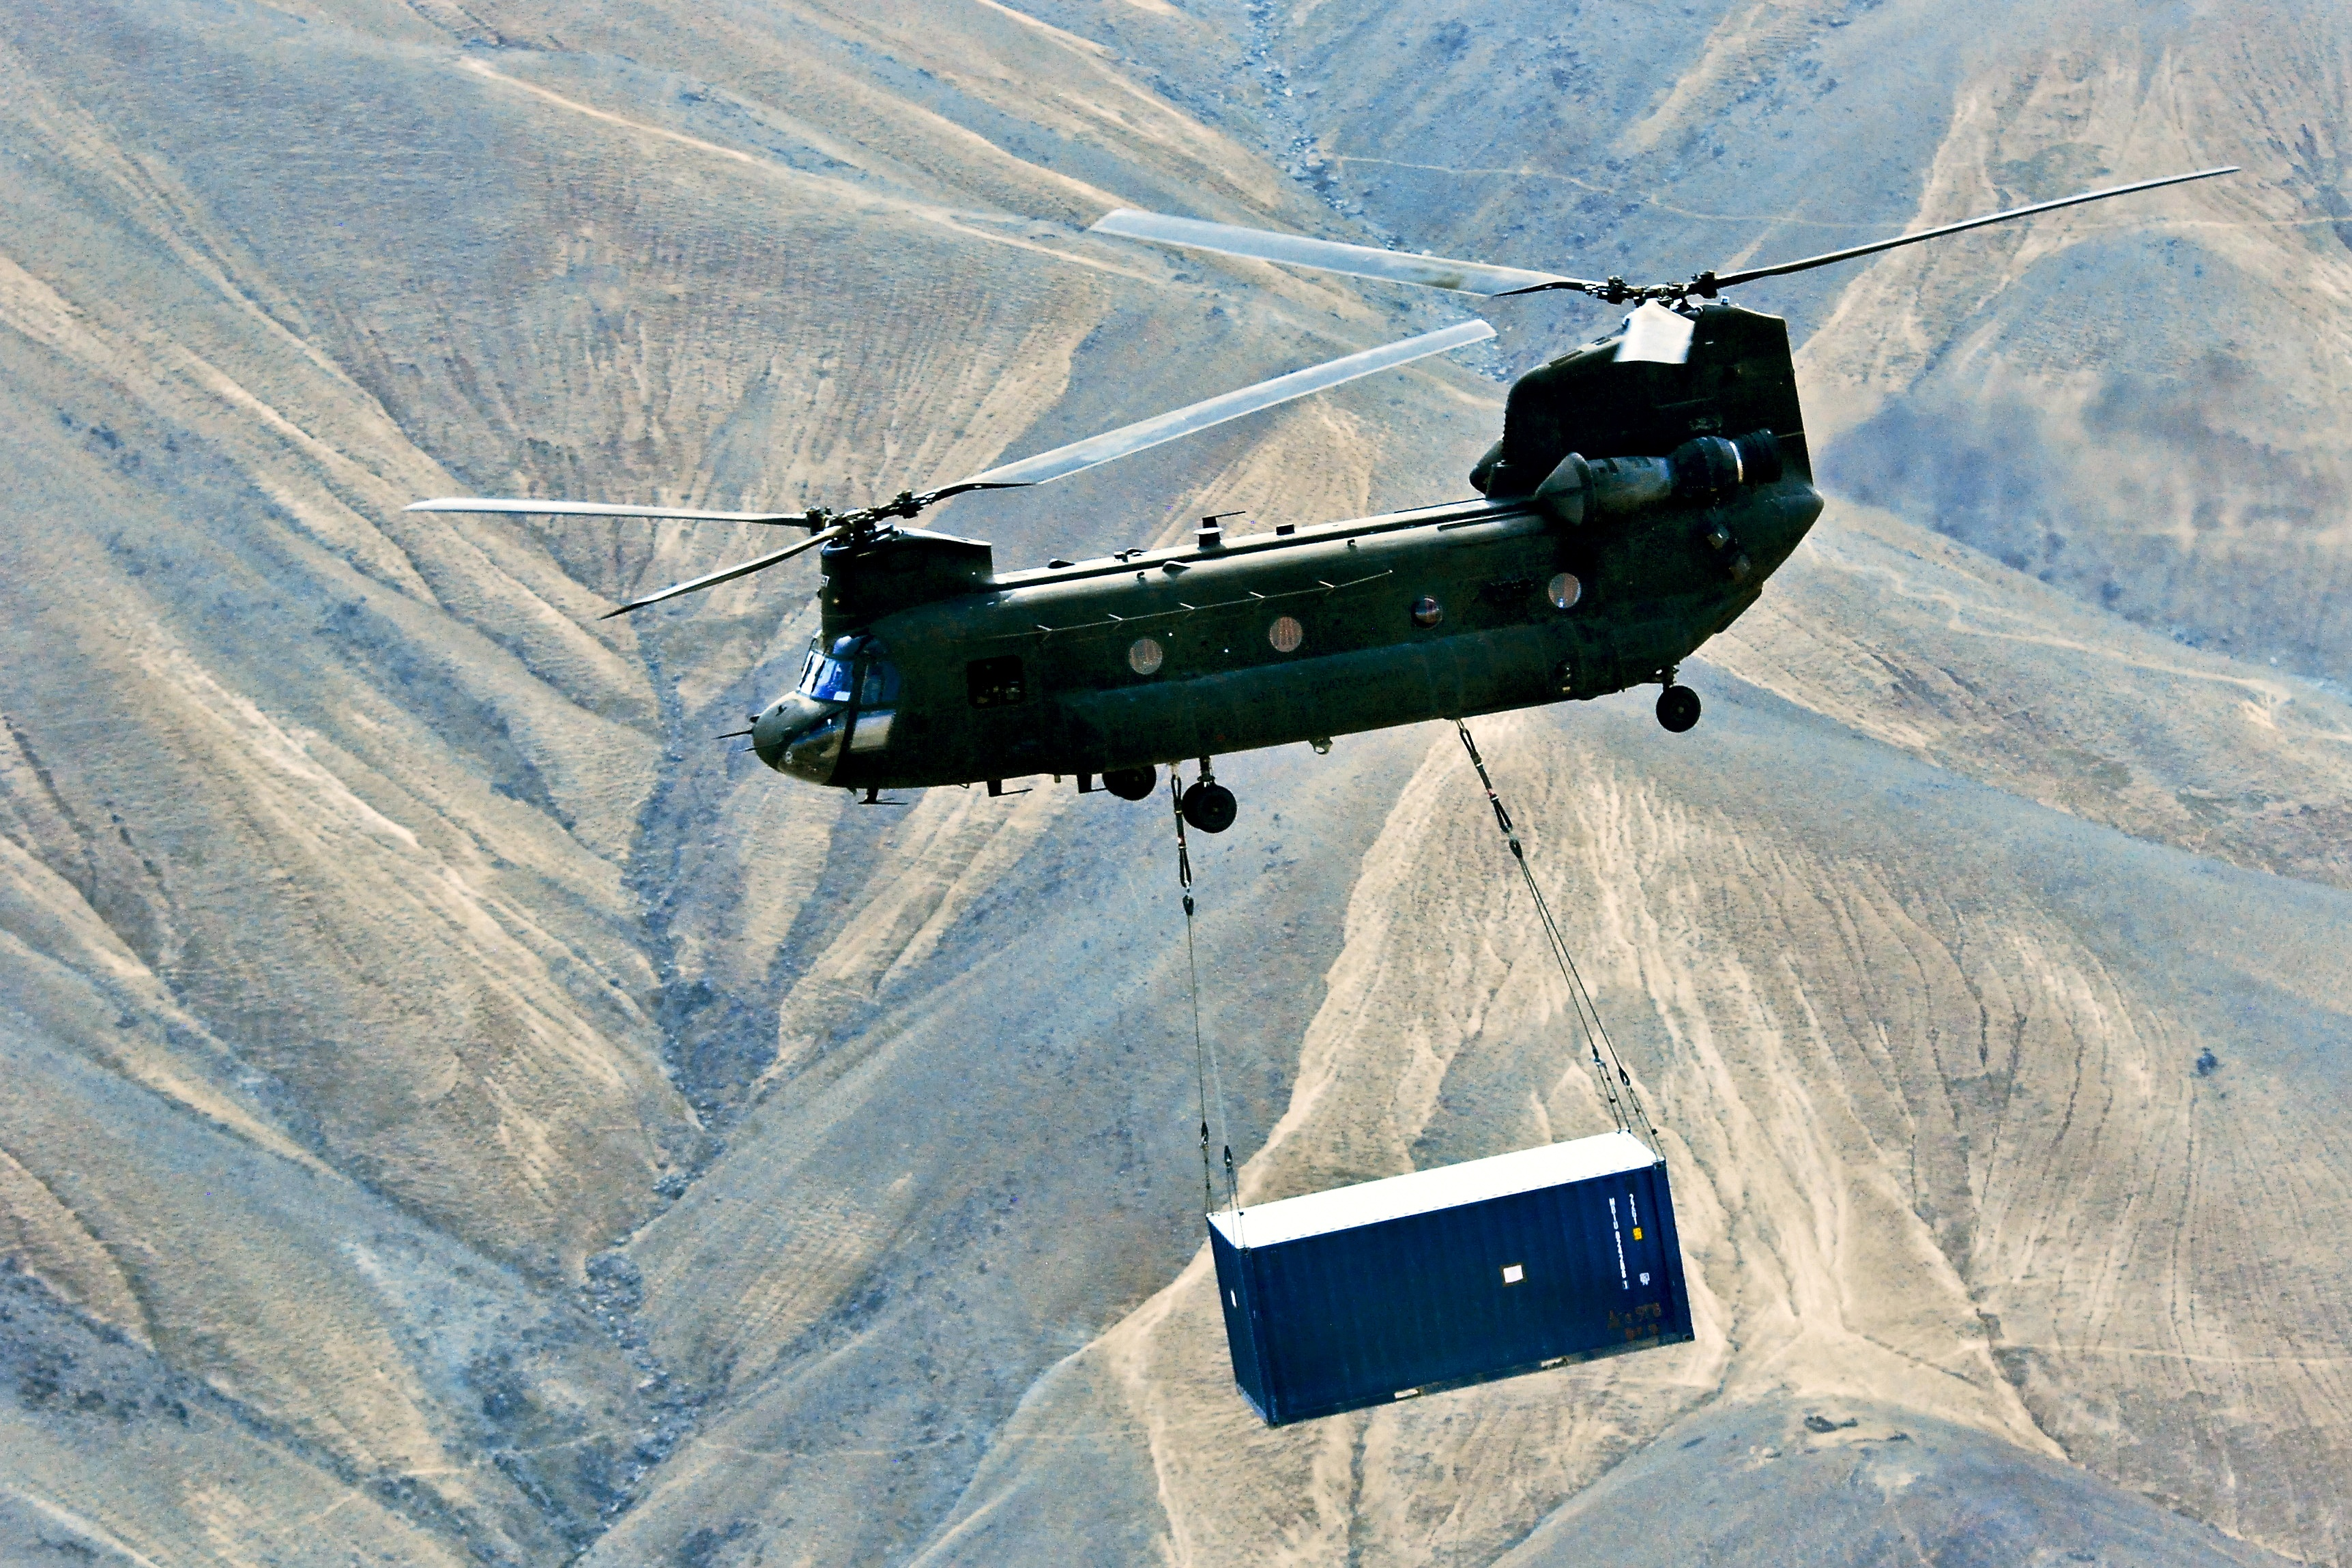 Military Helicopter, Aircraft, Heli, Helicopter, Military, HQ Photo